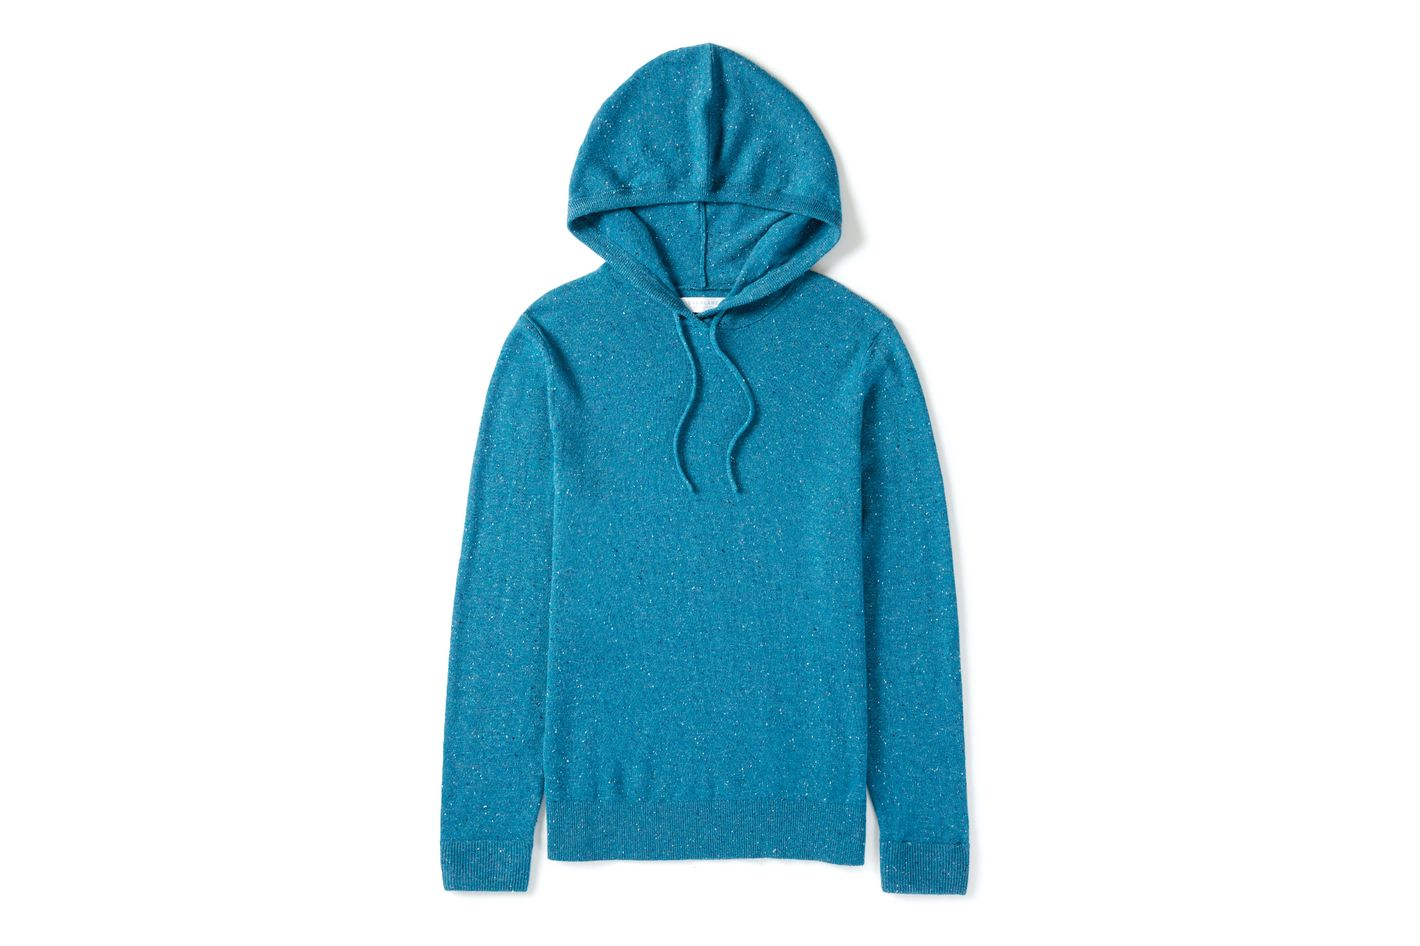 The Cashmere Square Hoodie